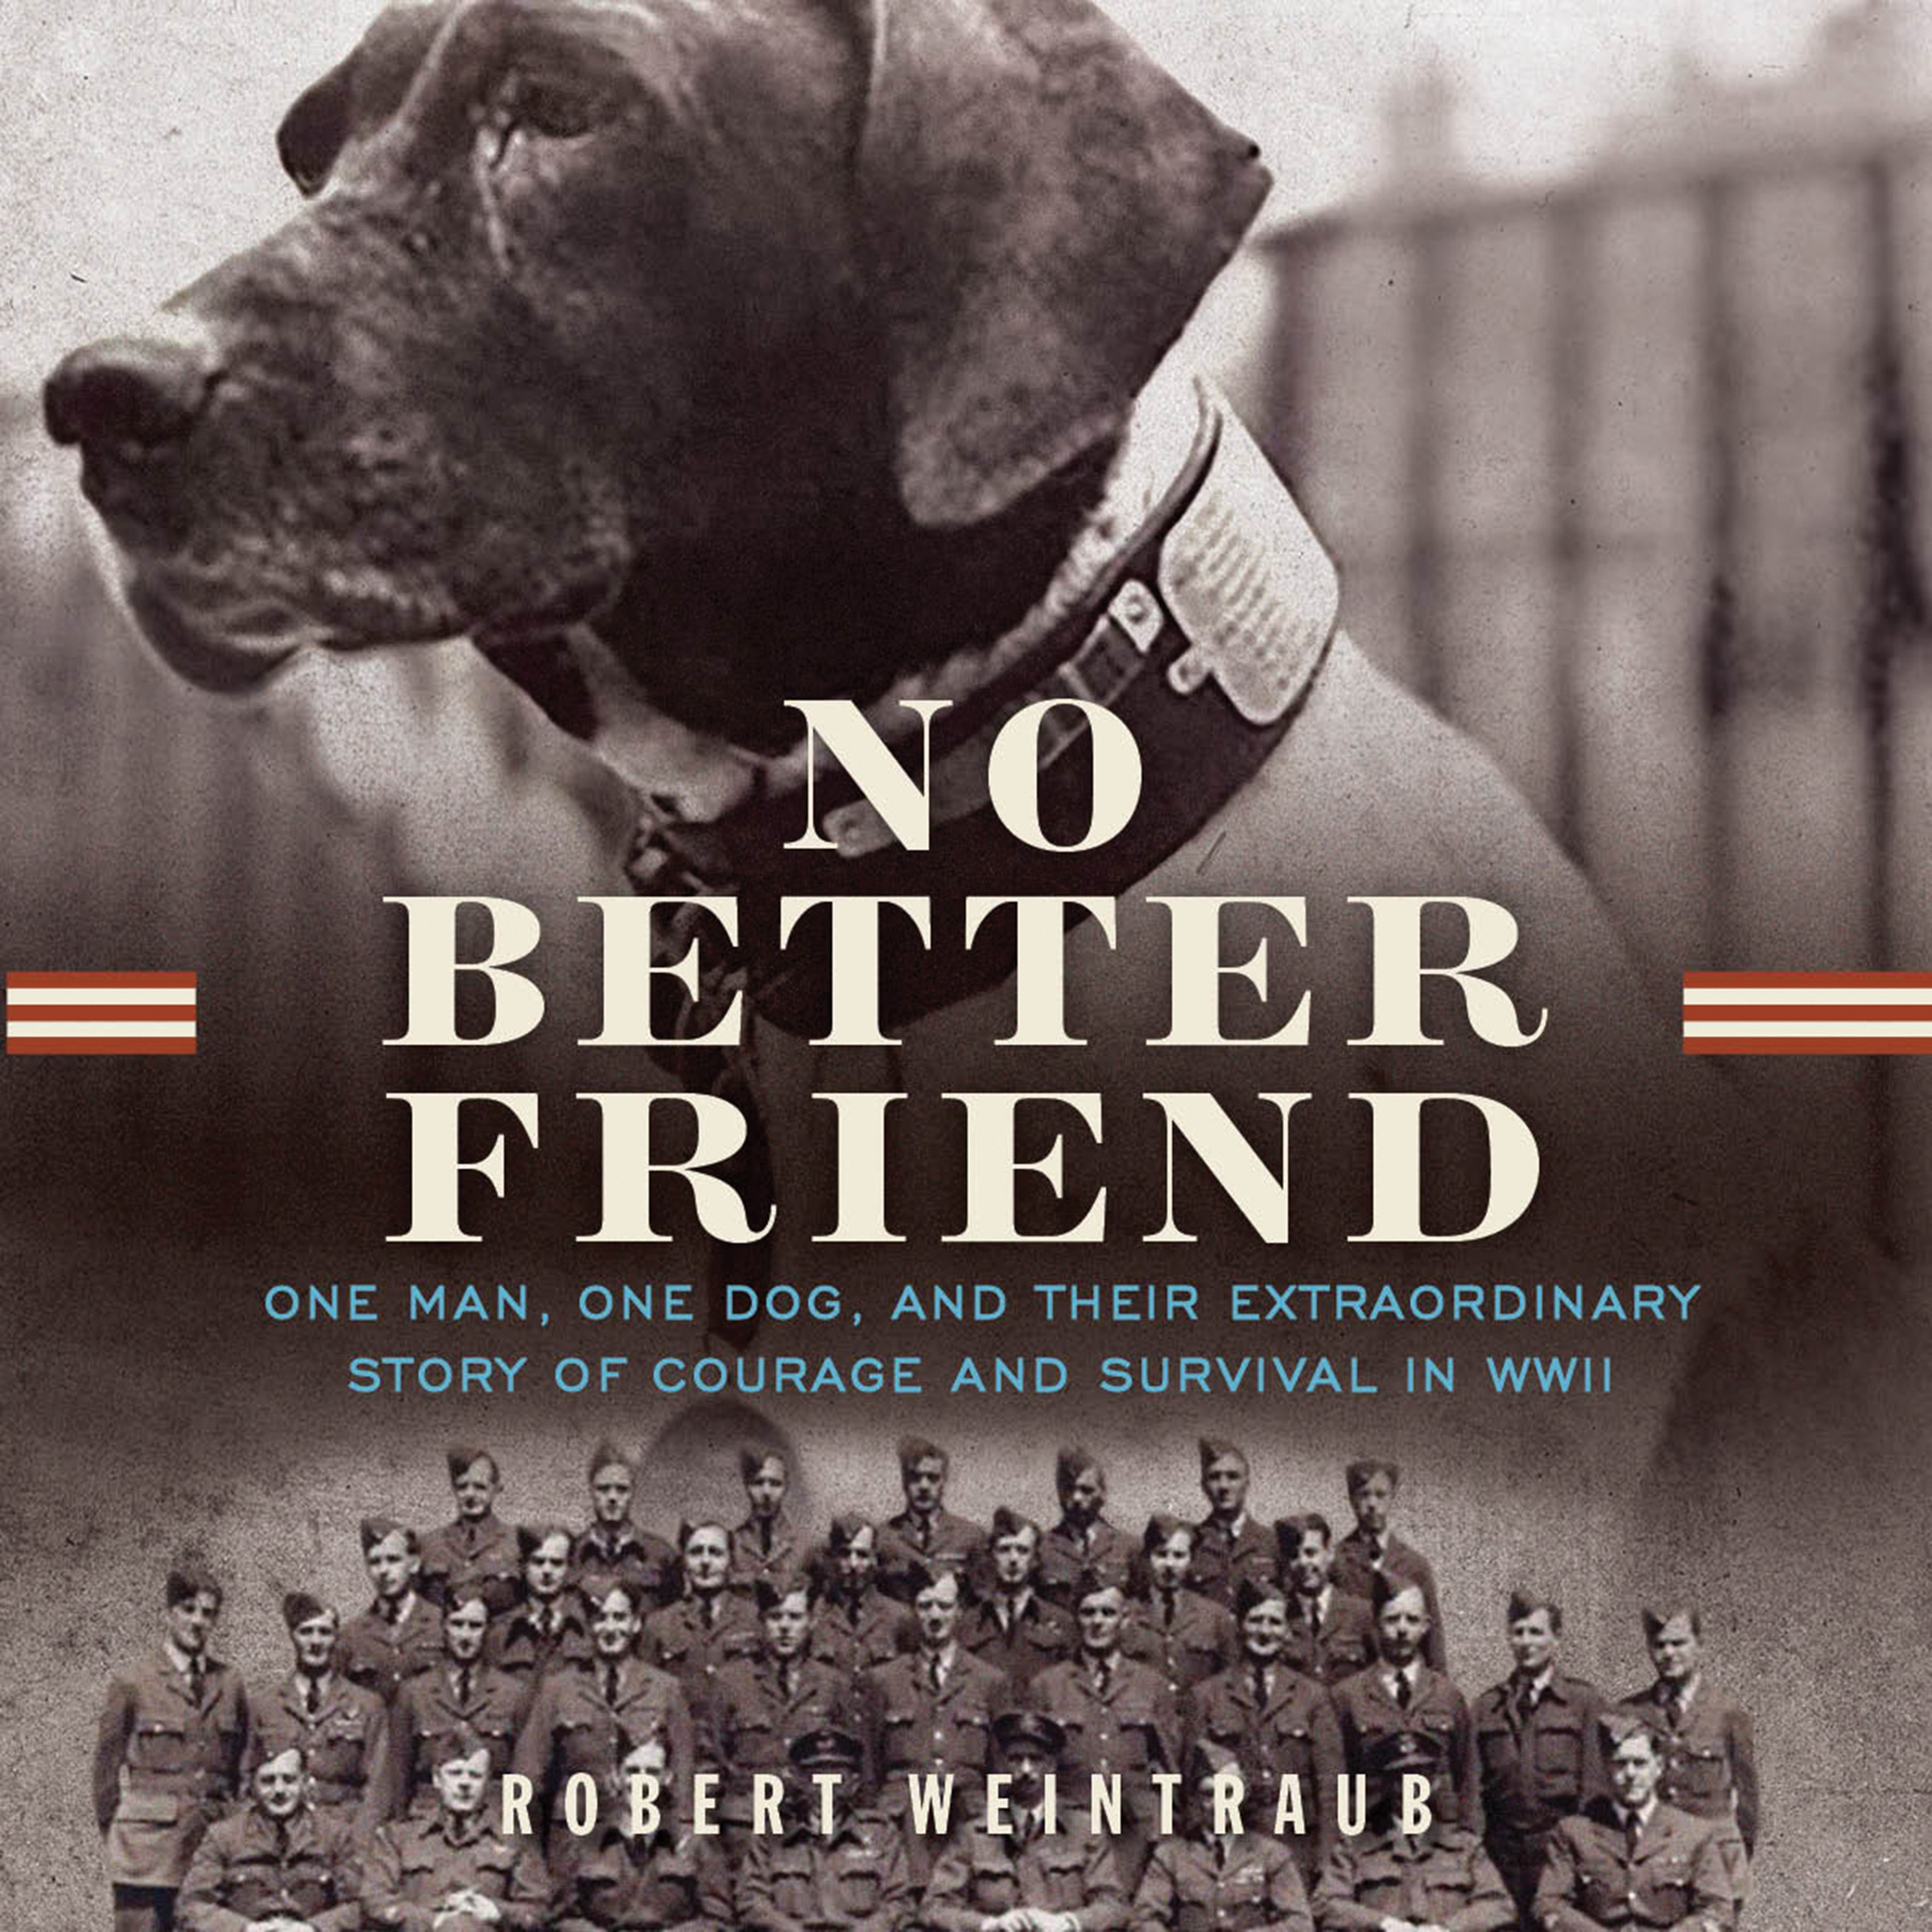 Printable No Better Friend: One Man, One Dog, and Their Extraordinary Story of Courage and Survival in WWII Audiobook Cover Art